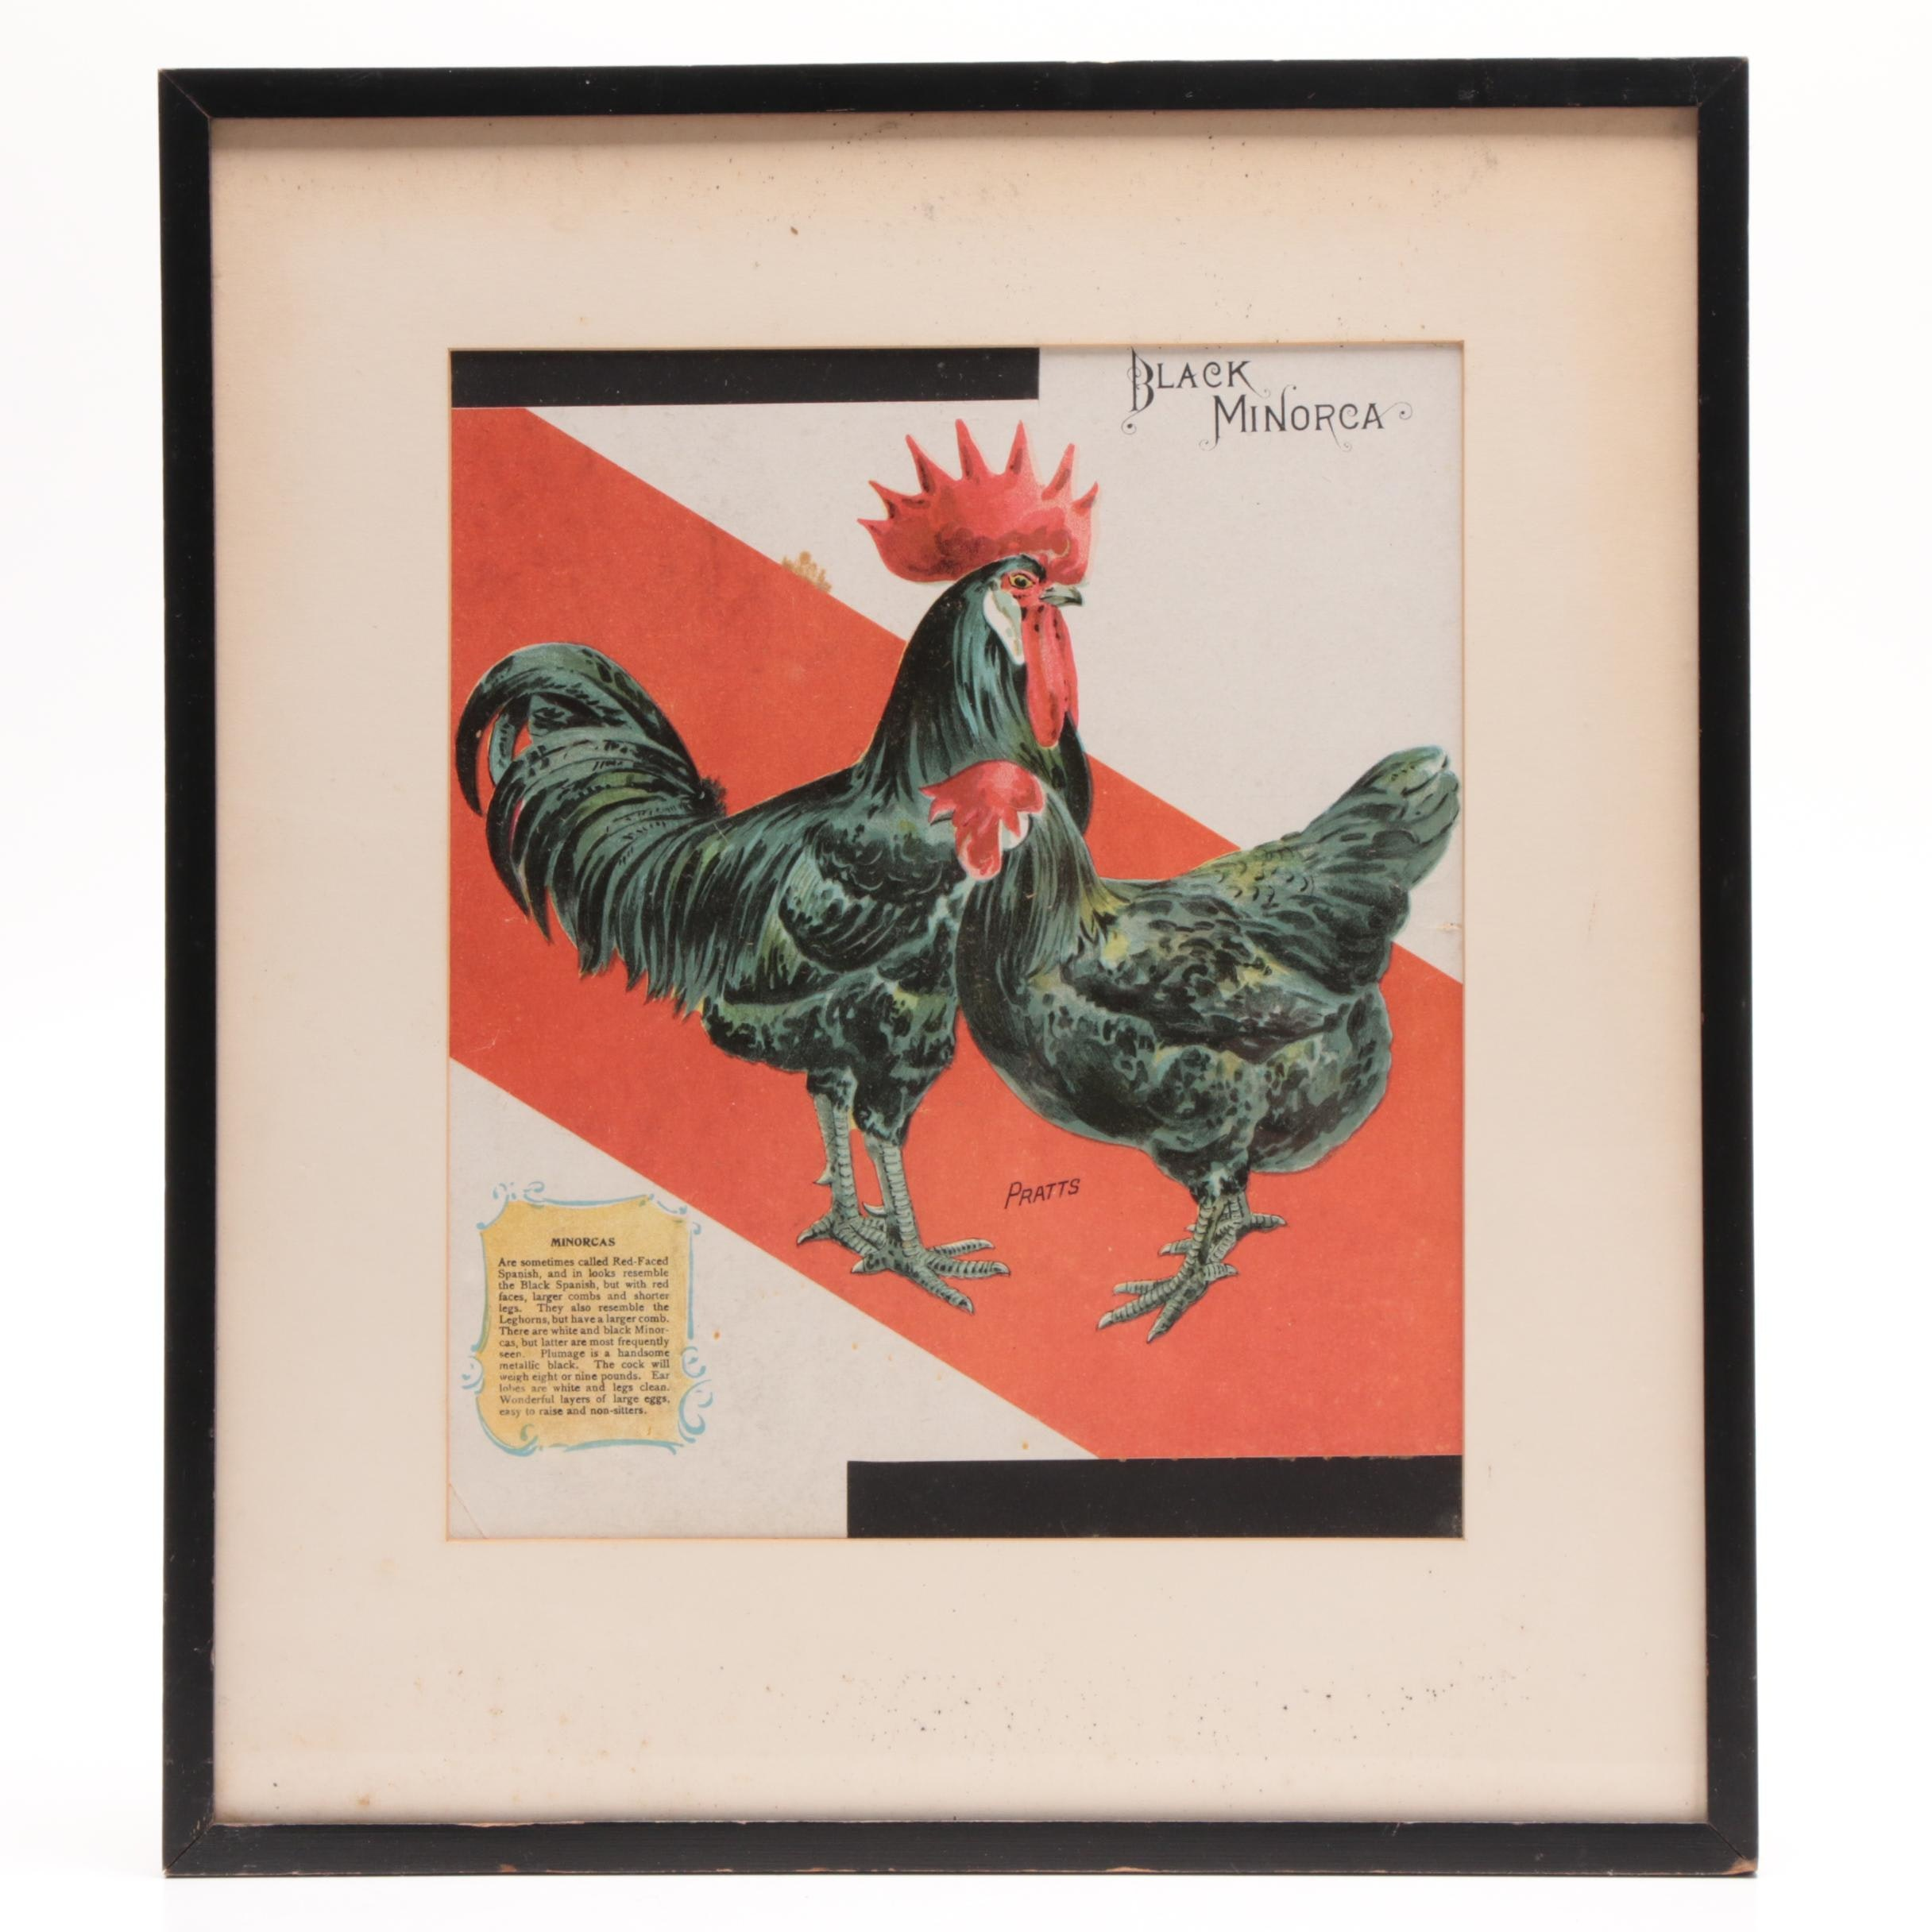 Antique Chromolithograph Advertising Poster for Pratts Poultry Food